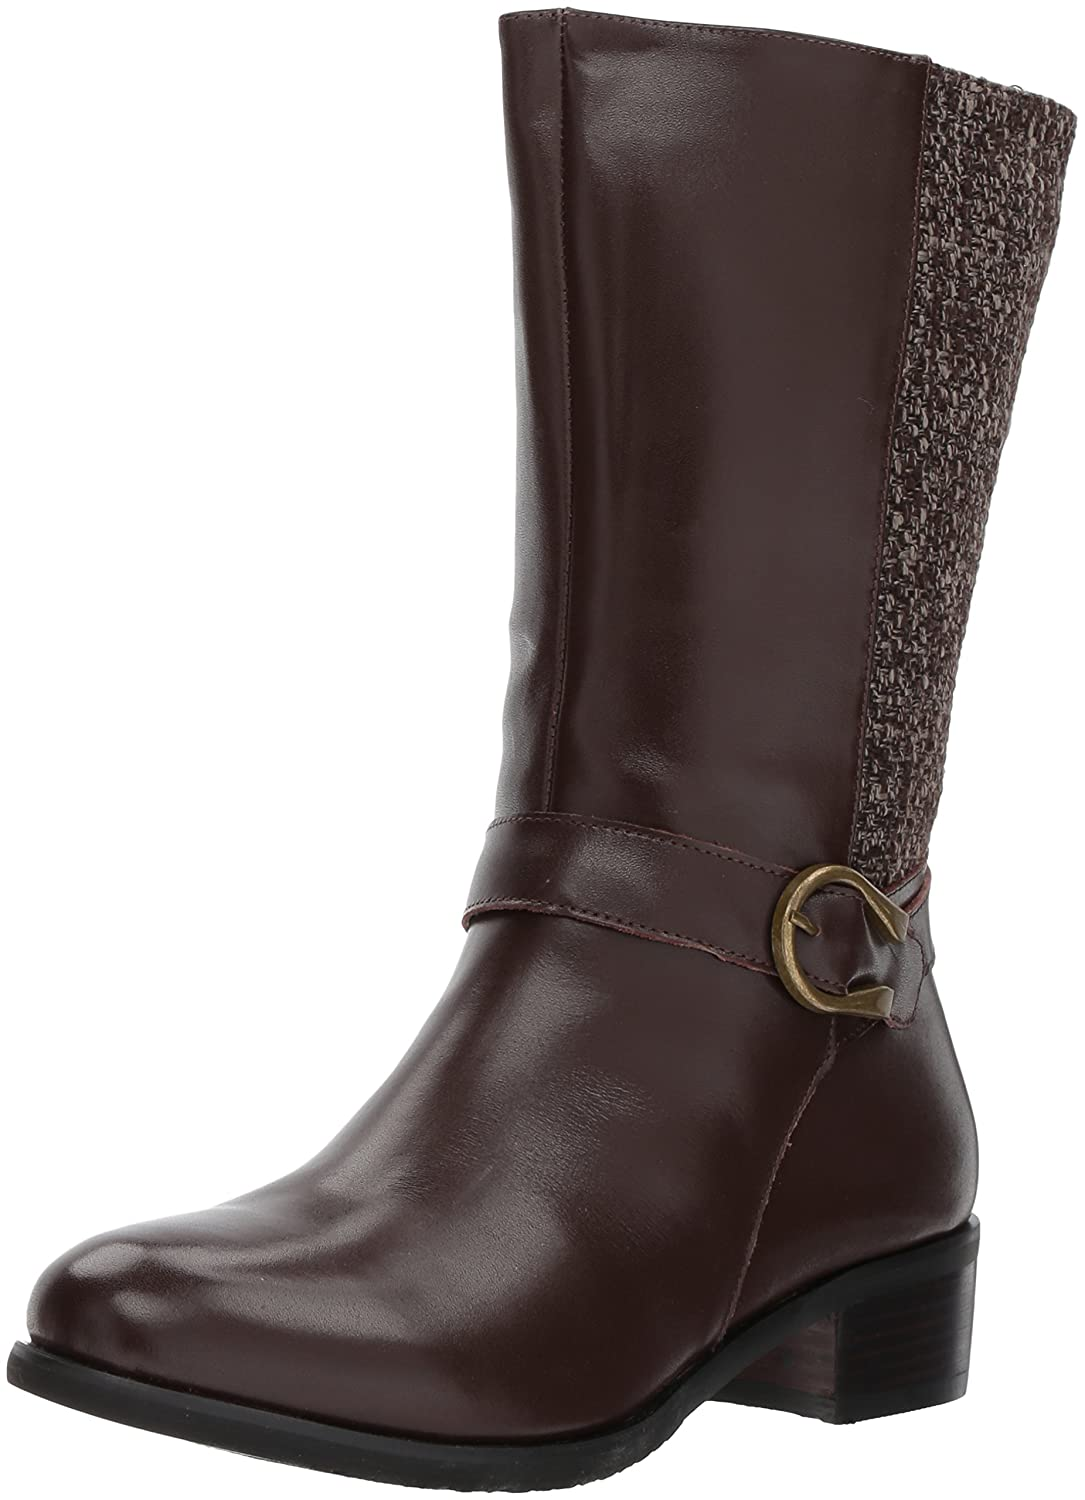 Propét Women's Tessa Riding Boot B01MRRZ468 10 B(M) US|Brown